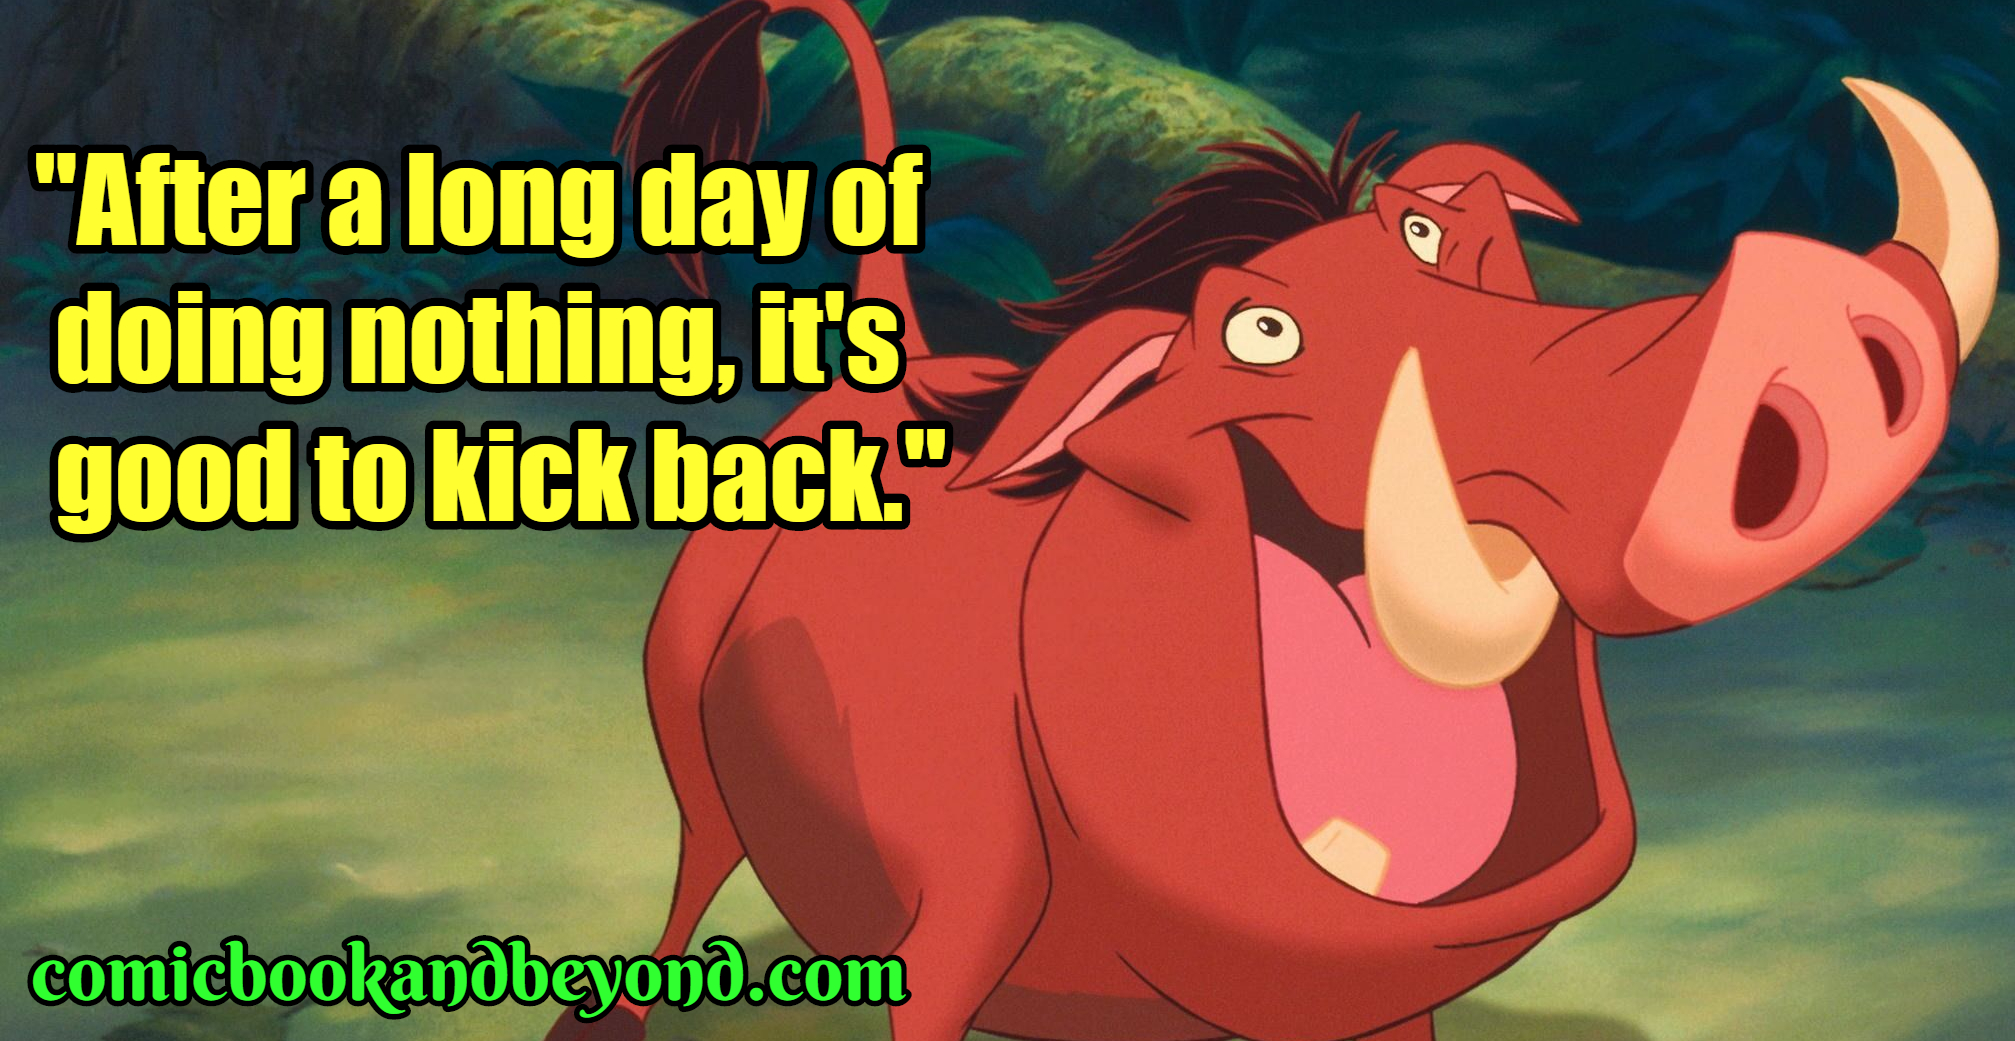 100+ Pumbaa Quotes From The Lion King Movie - Comic Books ...